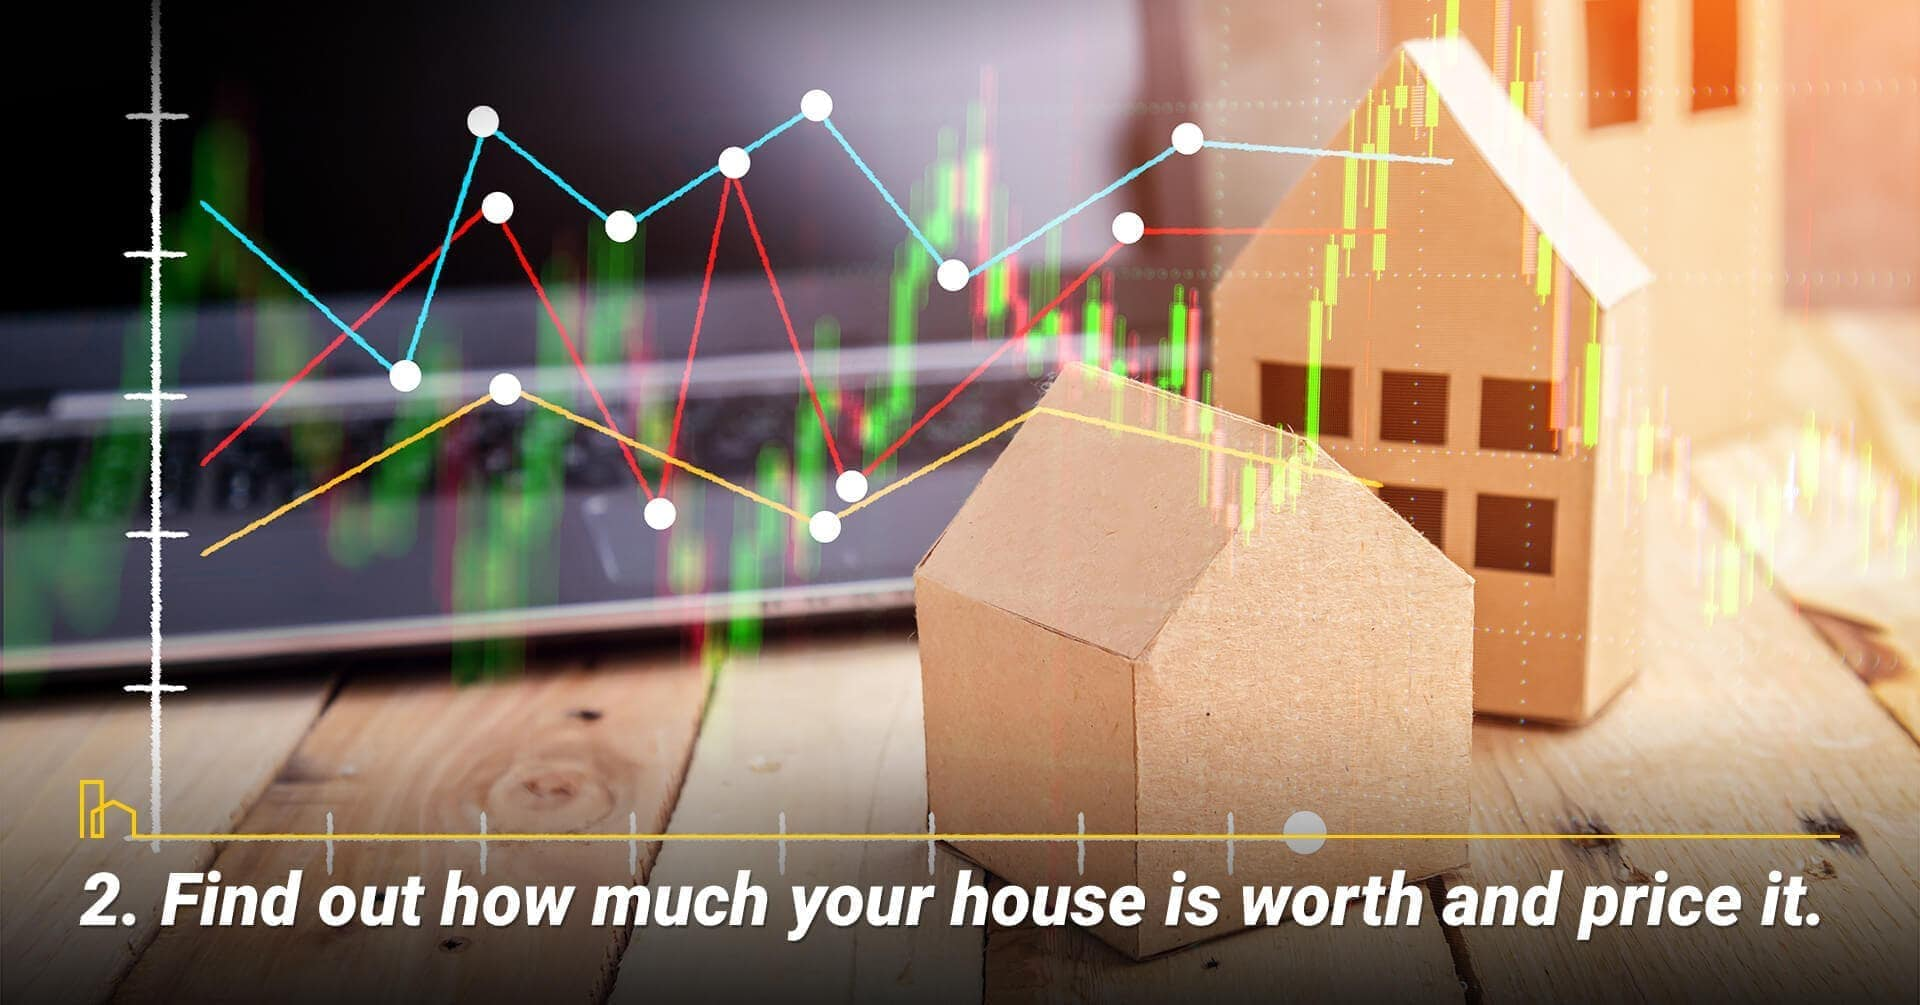 Find out how much your house is worth and price it, price your house appropriately